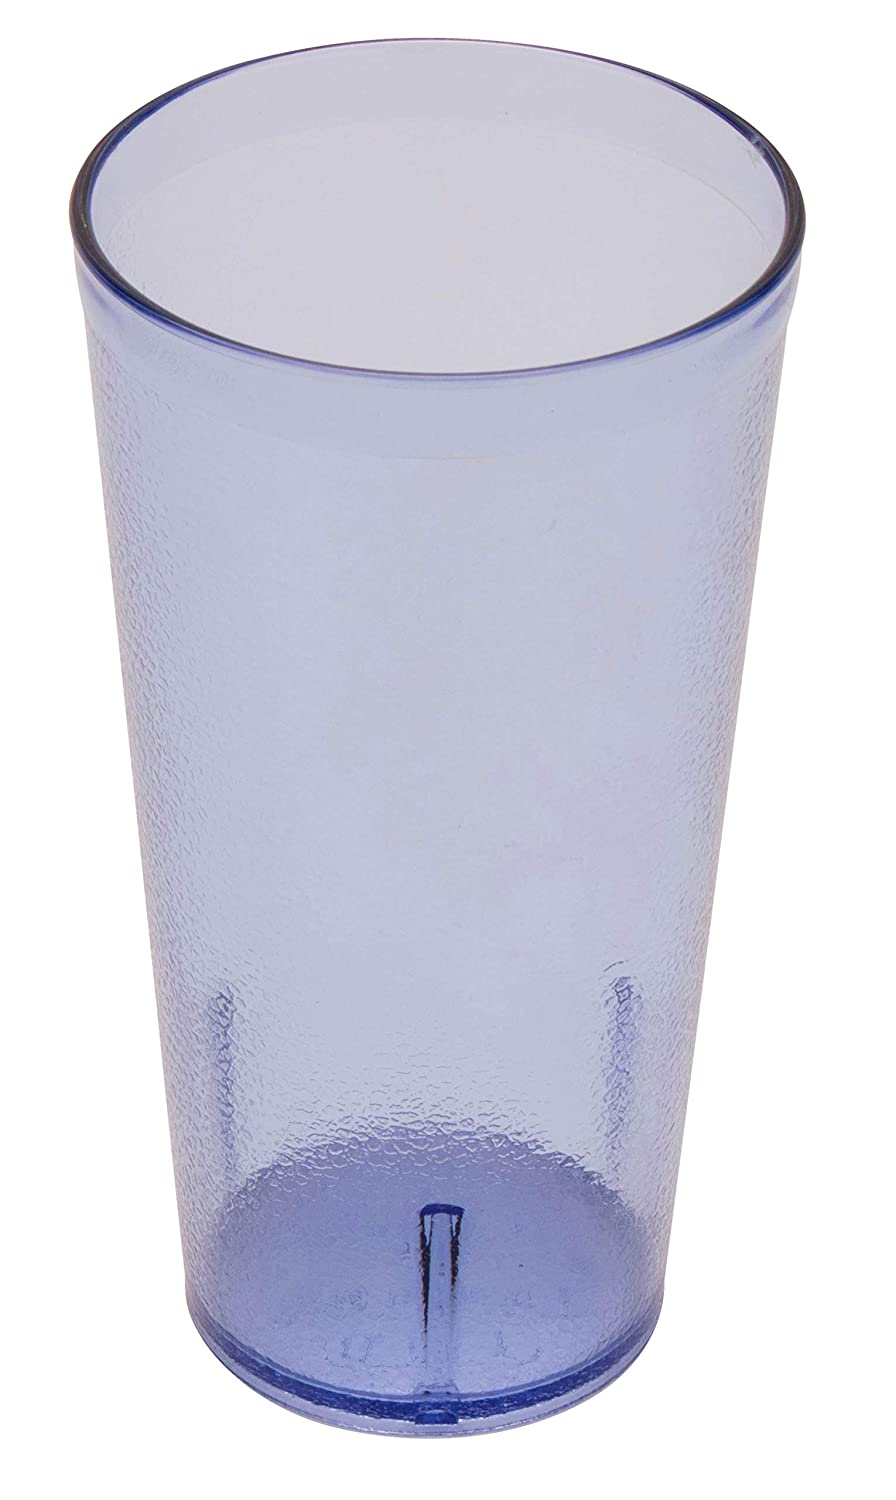 G.E.T. Enterprises Blue 20 oz. Tumbler, Break Resistant Dishwasher Safe San Textured Tumblers Collection 6620-1-BL-EC (Pack of 4)